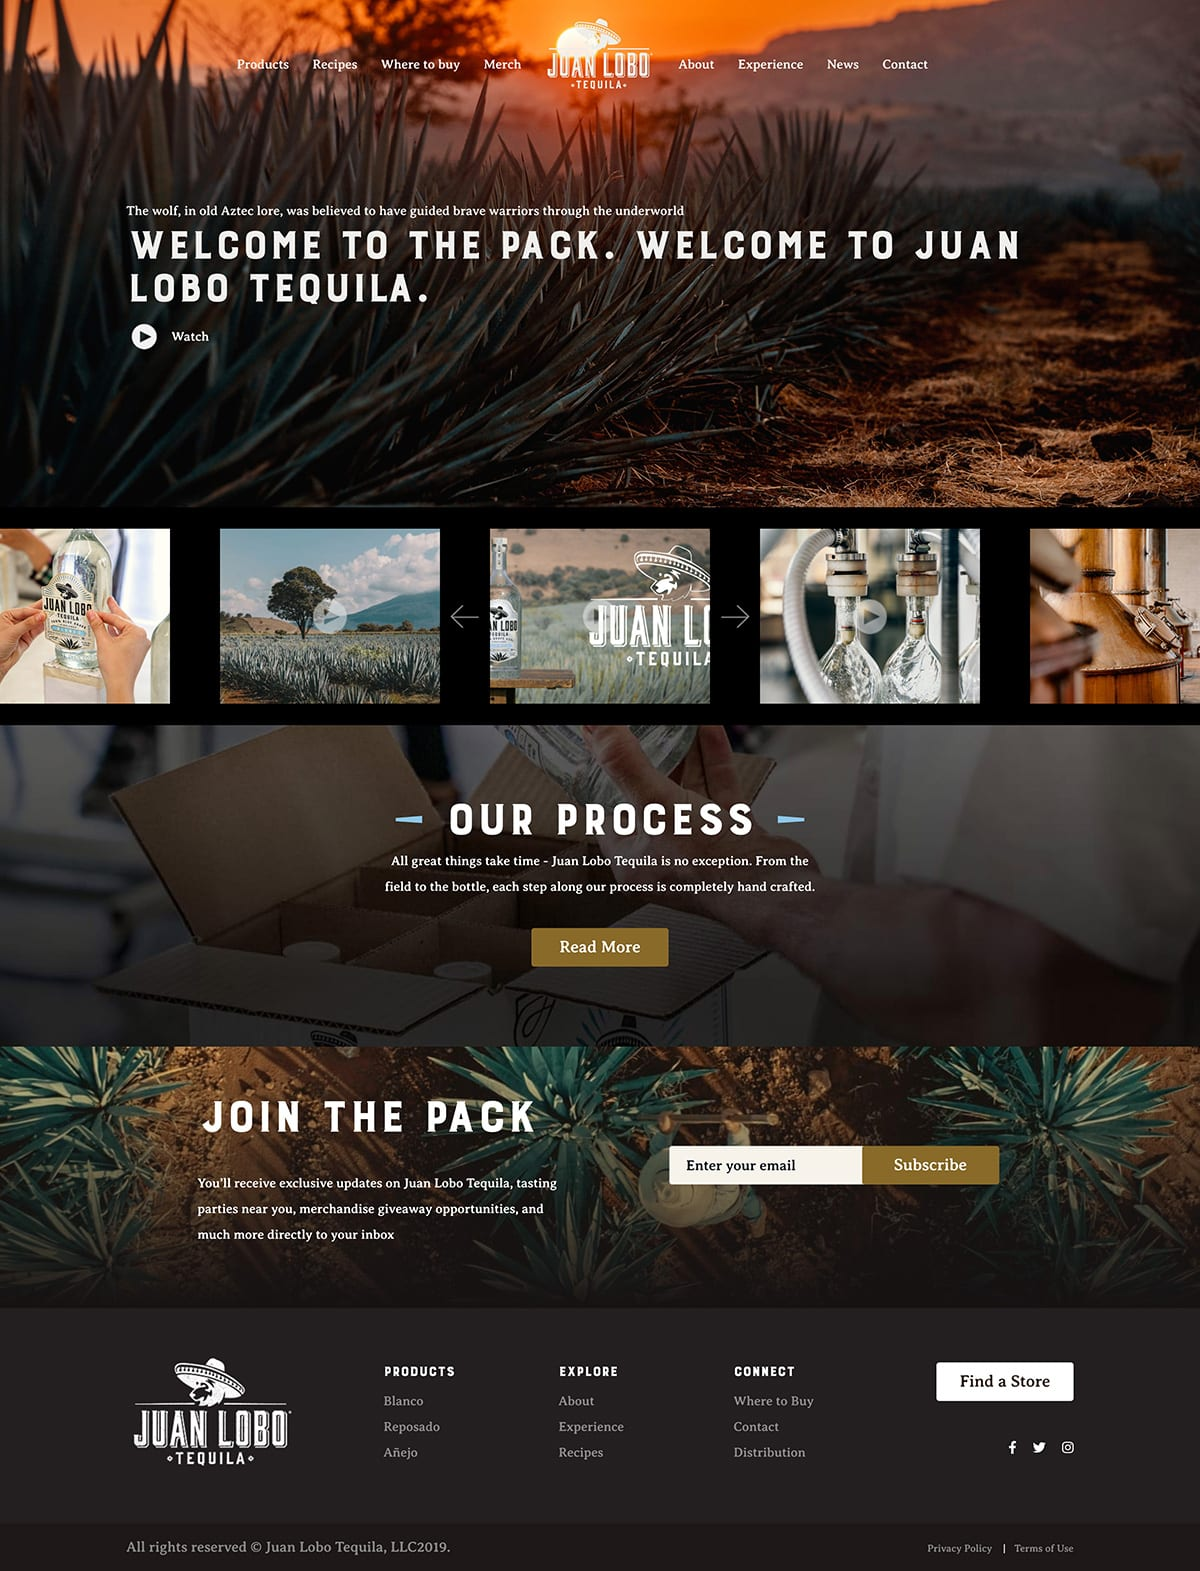 Juan Lobo Tequila Website Experiences Page